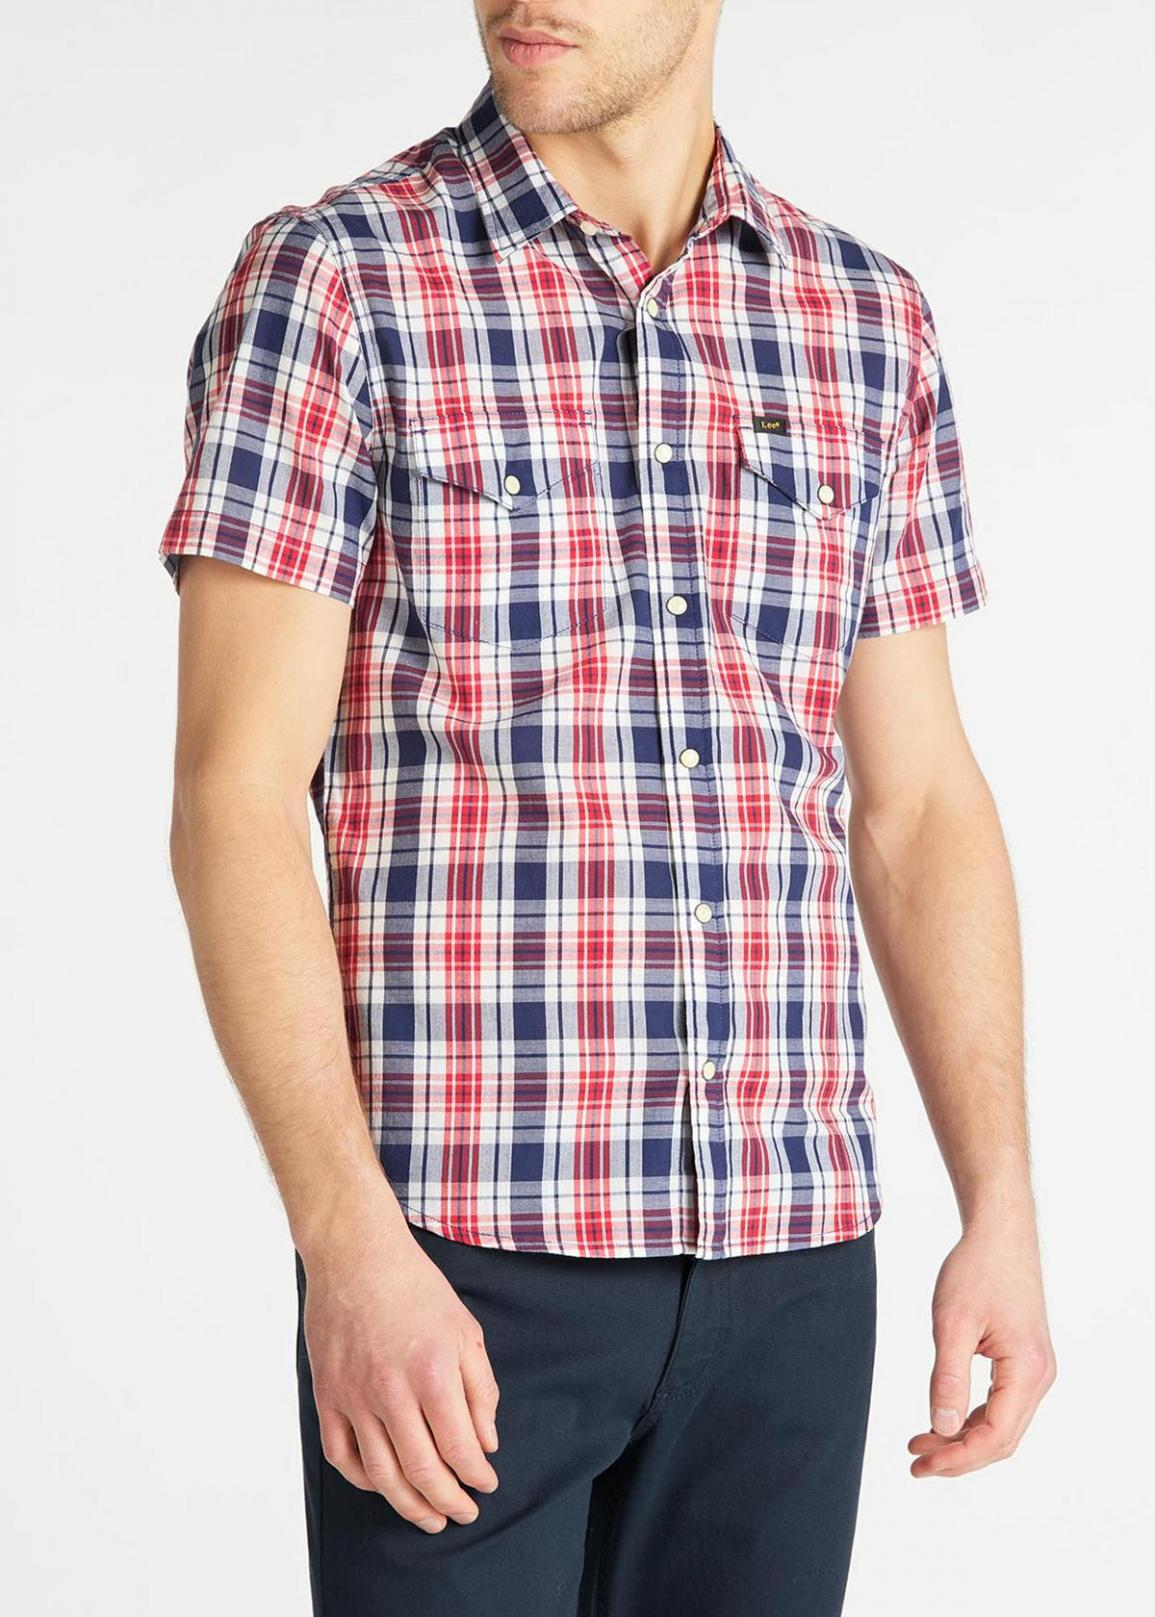 Lee® Short Sleeve Western Shirt - Blueprint